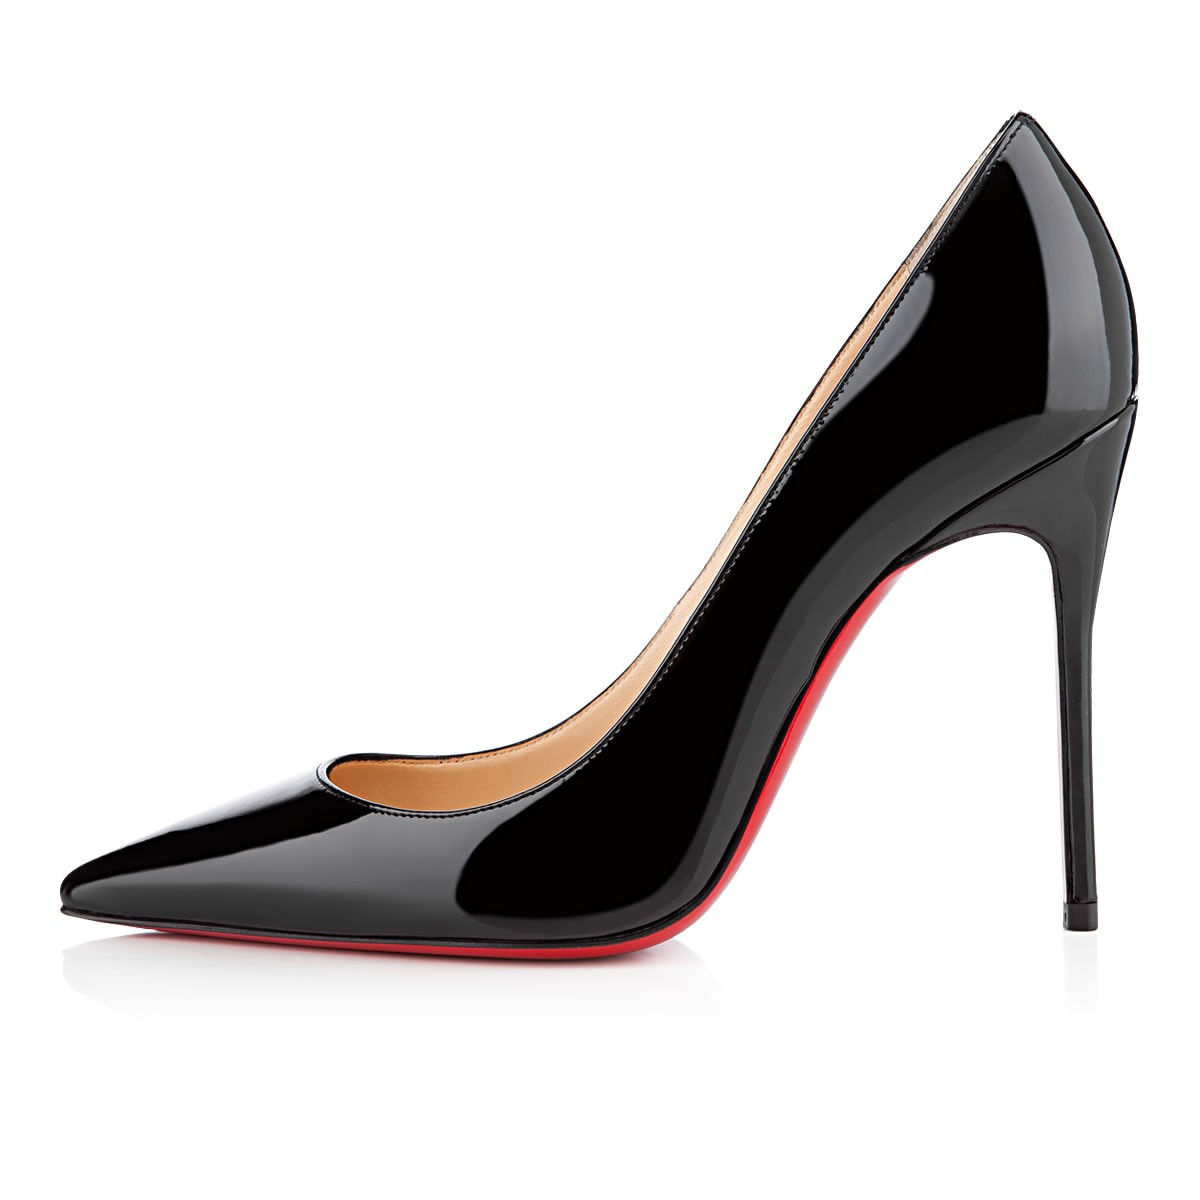 decollete louboutin 120